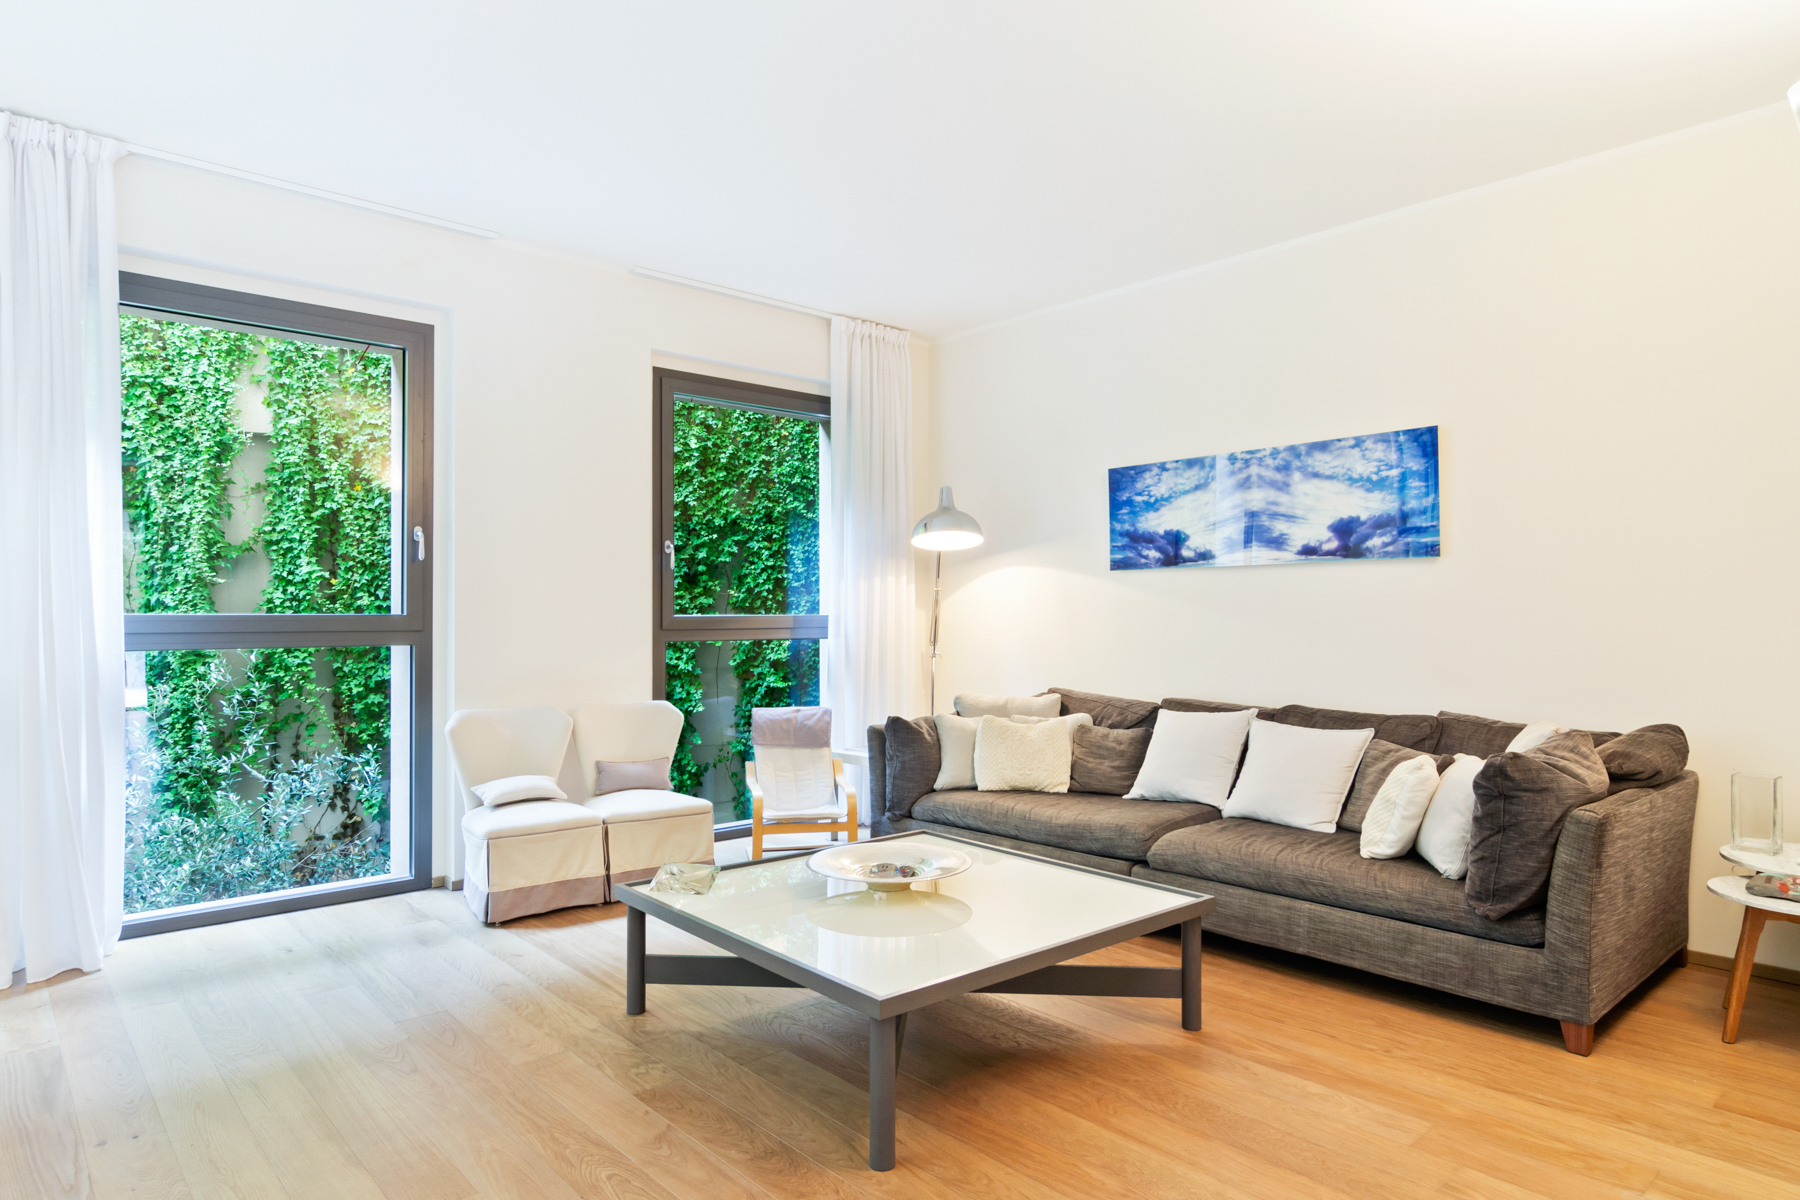 Apartments for Sale at Wonderful Apartment in a new building with garden, near the sea Santa Margherita Ligure, Genoa Italy